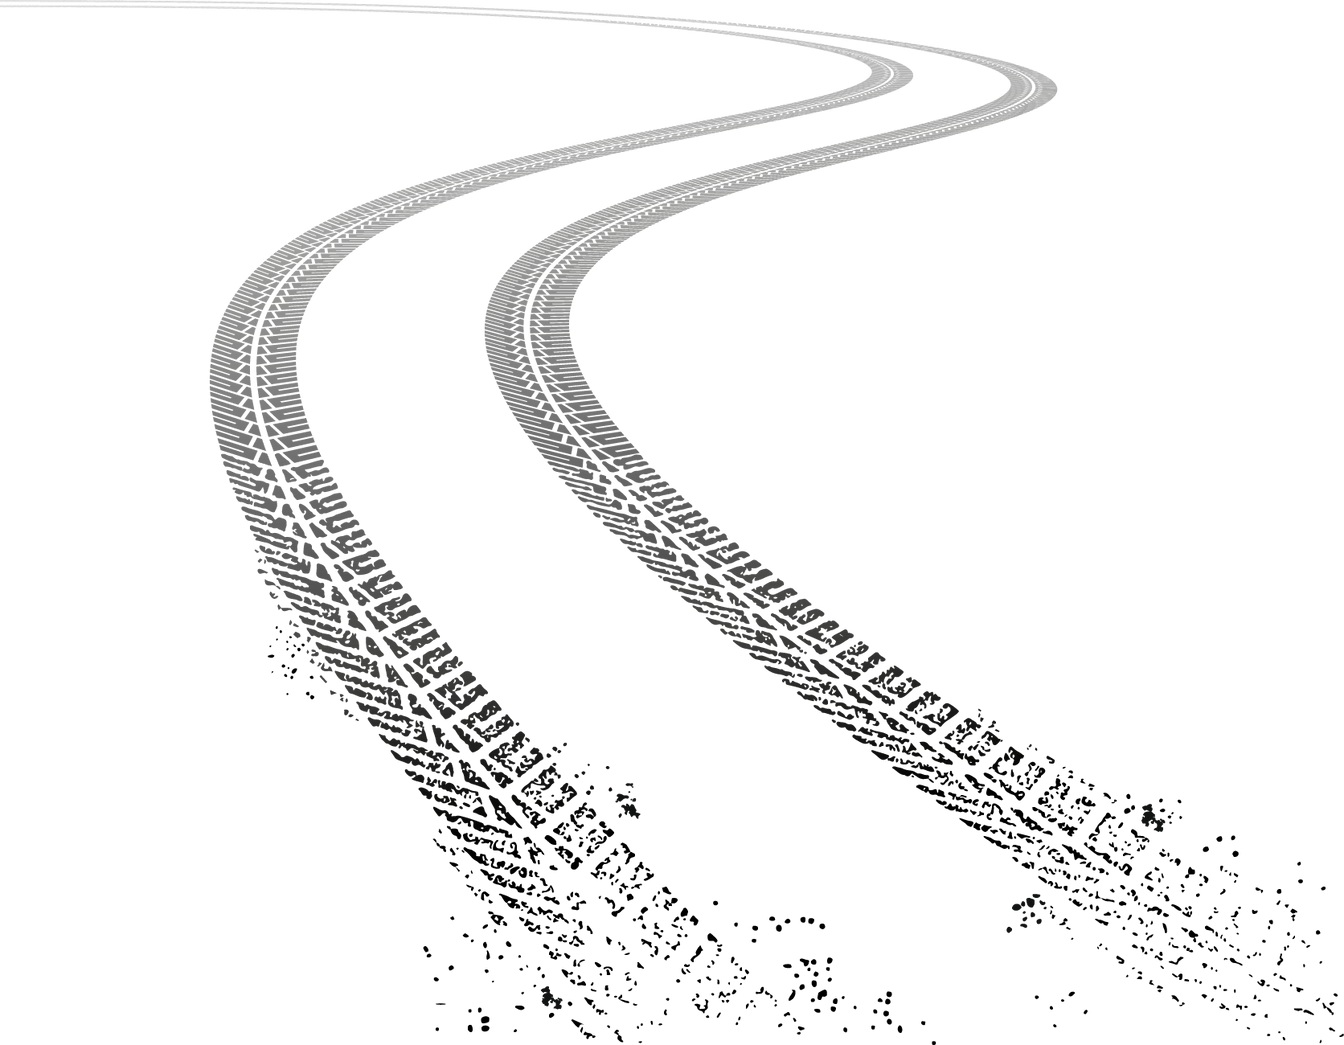 tiretracks.png